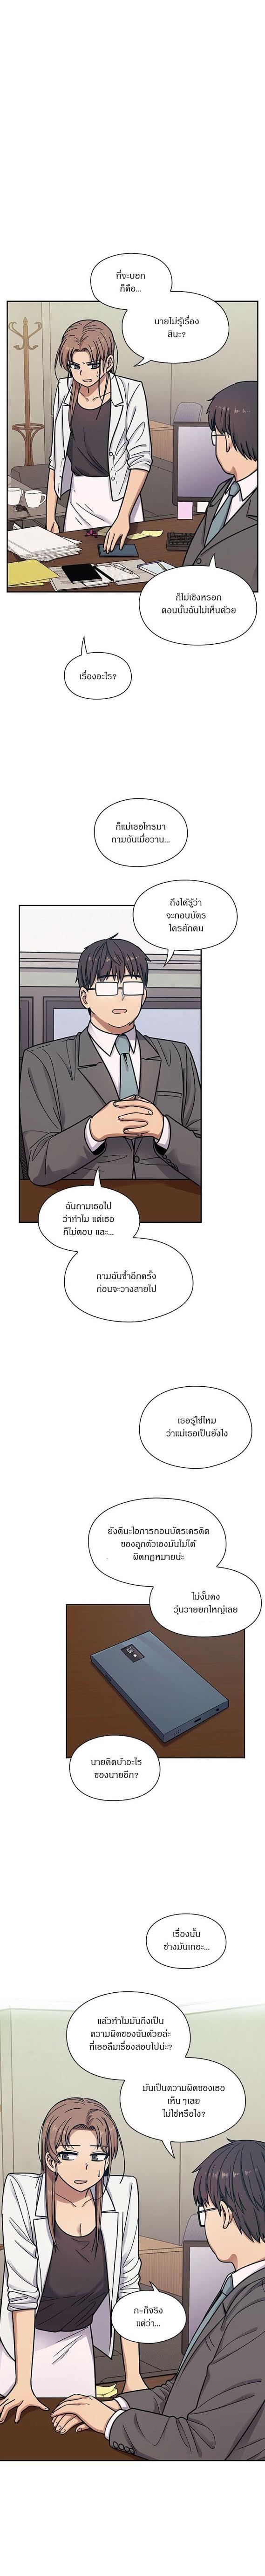 Crime and Punishment - หน้า 7